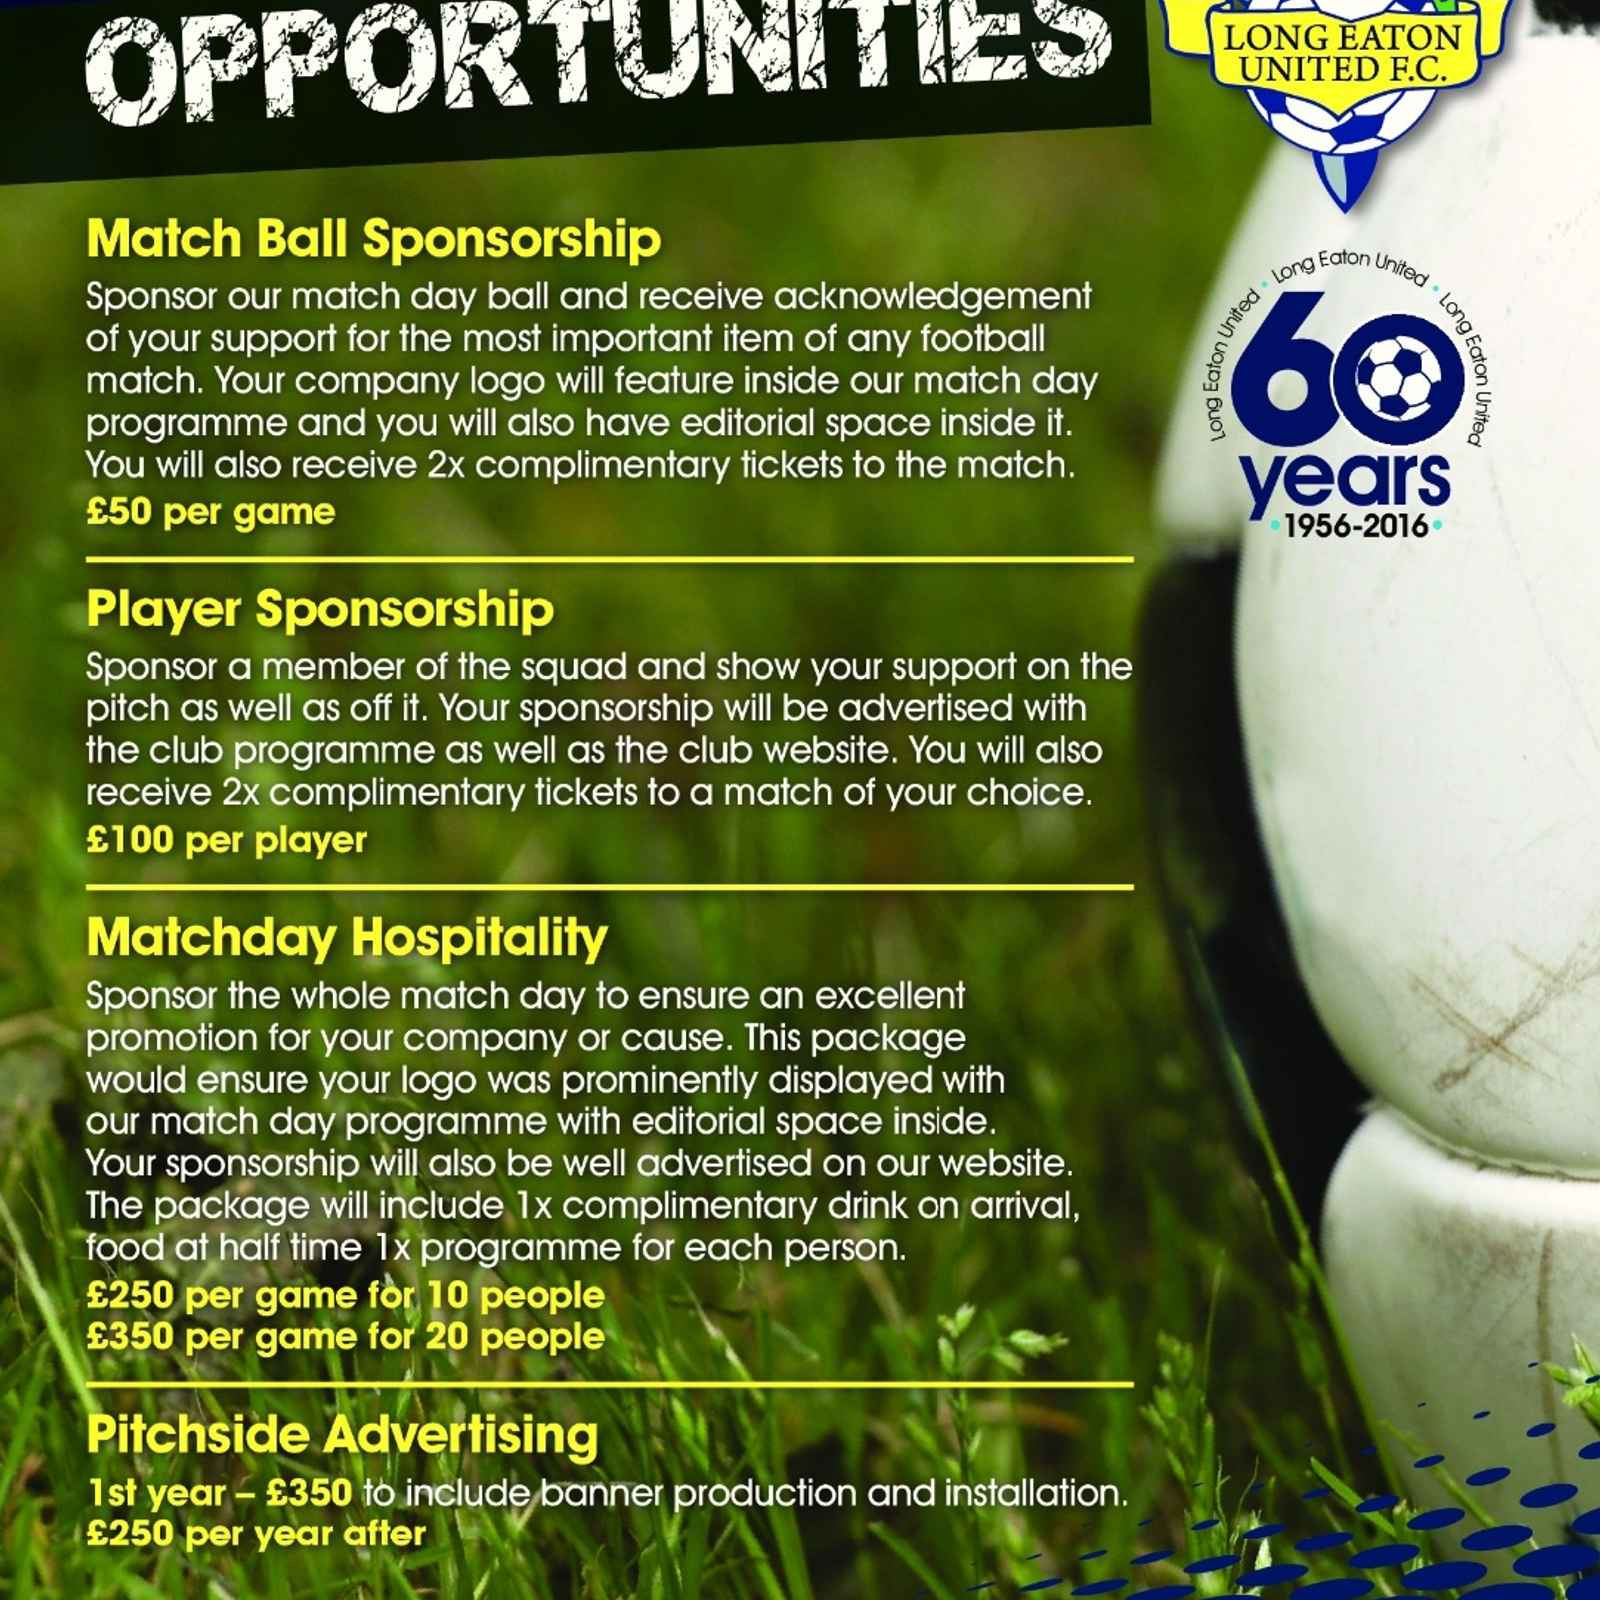 Sponsorship Opportunities at Long Eaton United